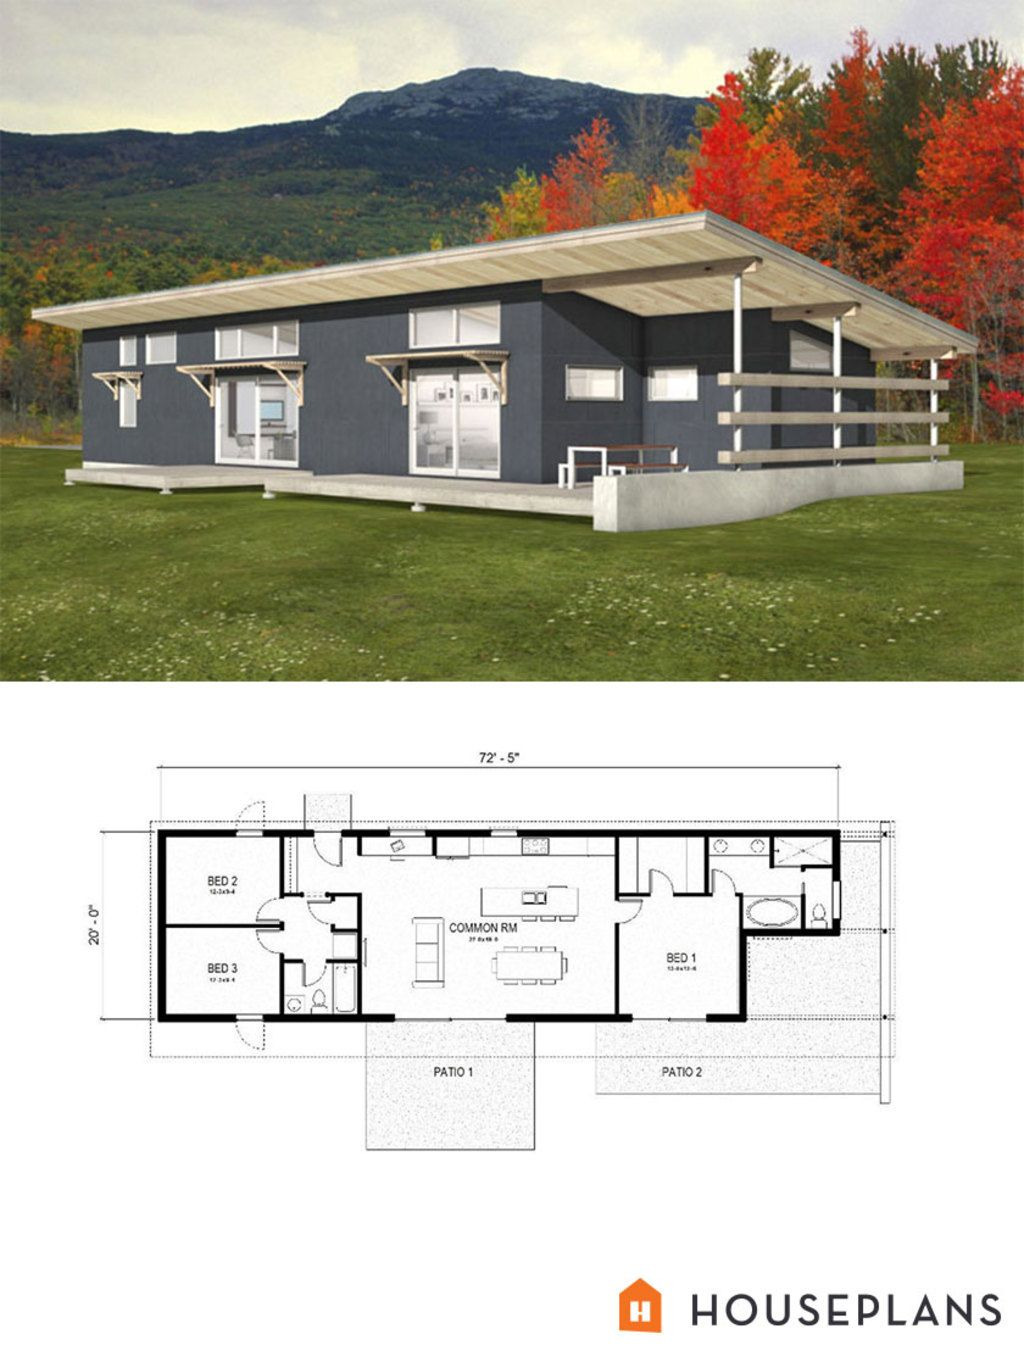 Small Efficient House Plans Inspirational Modern Style House Plan 3 Beds 2 Baths 1356 Sq Ft Plan